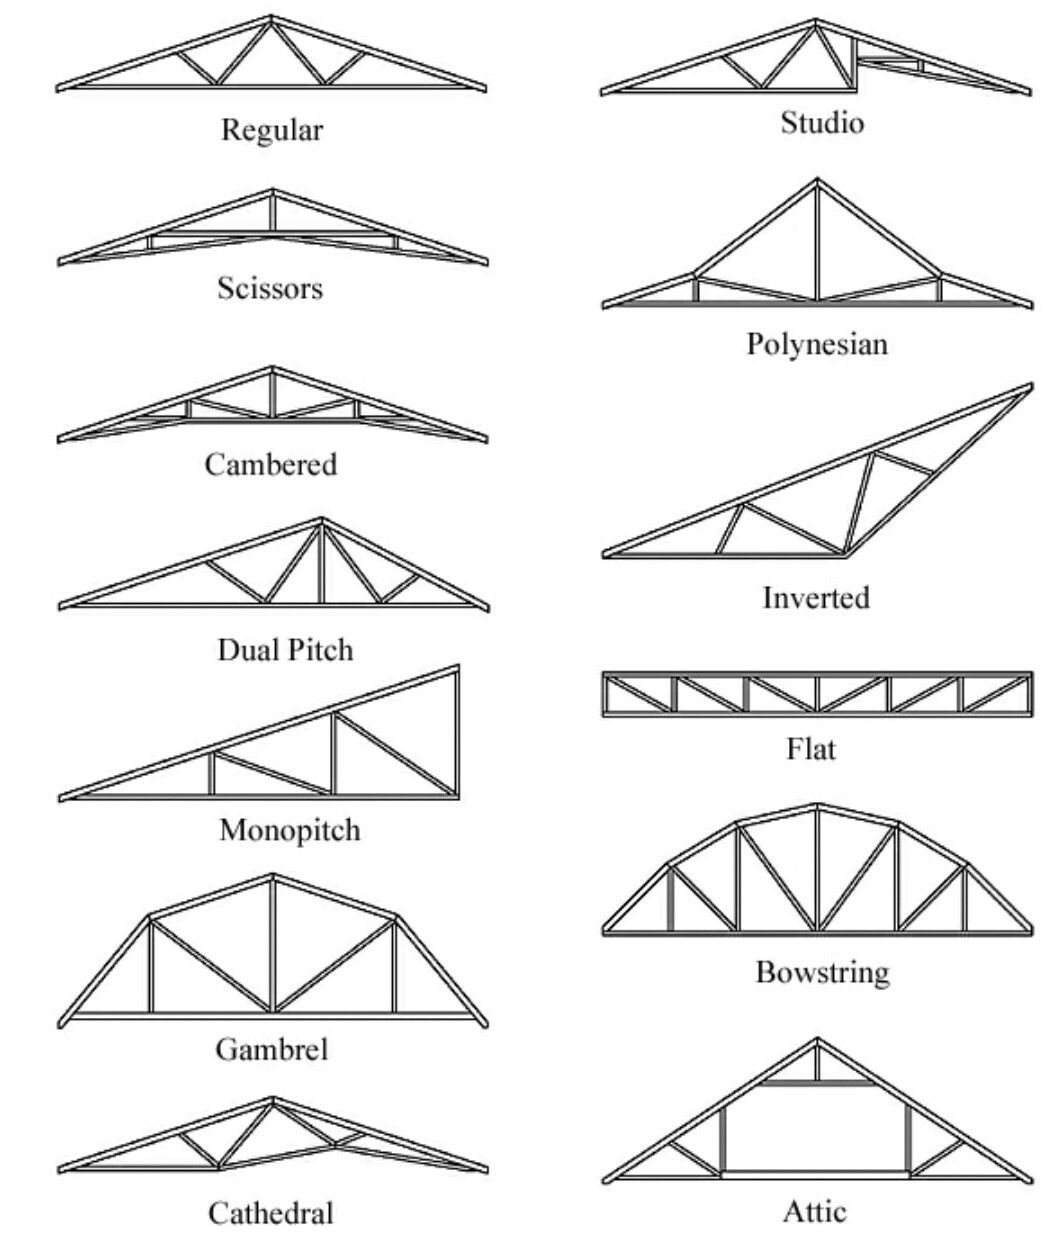 Pin By Natalie Flemington On Designer Space Saving Ideas Building Roof Roof Truss Design Flat Roof